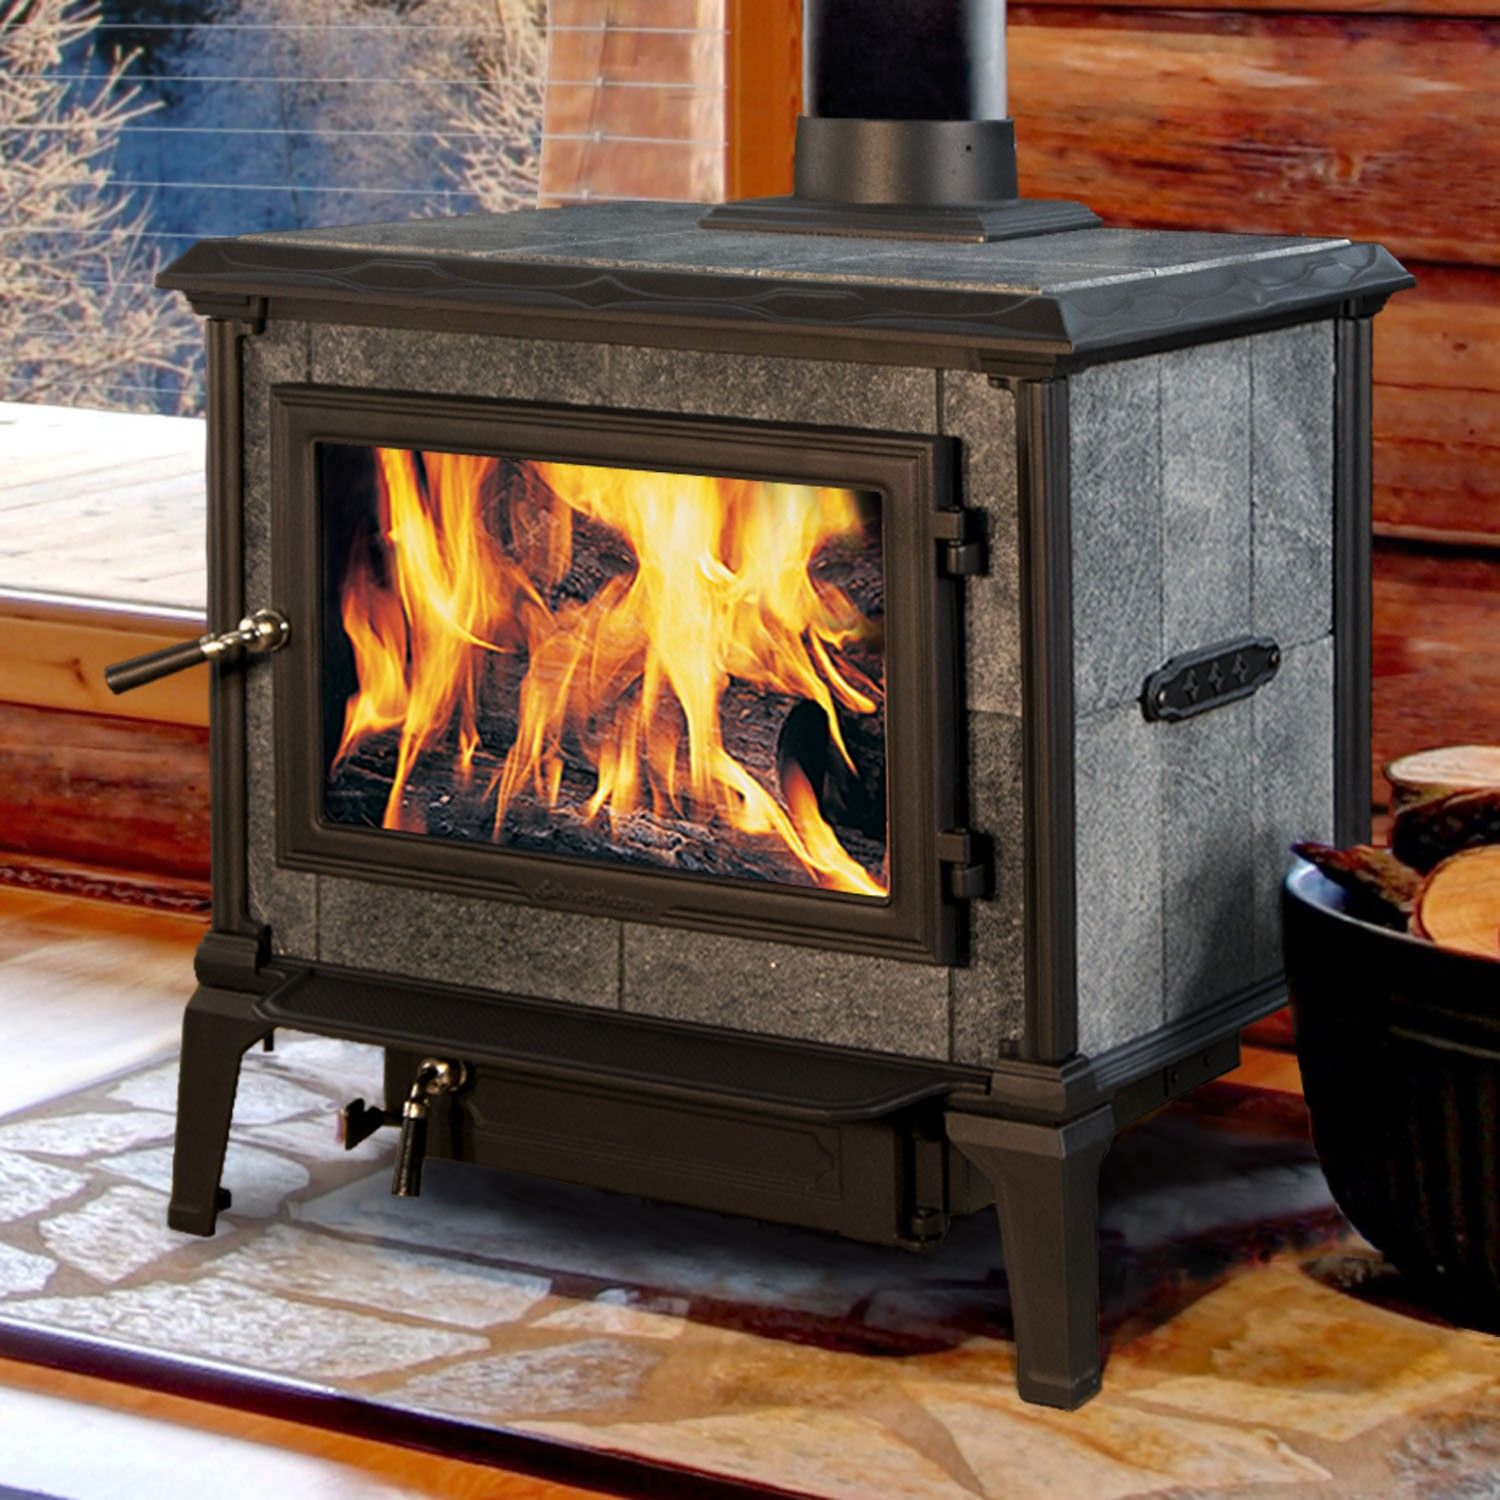 Soapstone Wood Stove, Wood Burning Stoves, Wood Stoves, Firewood,  Fireplaces, Steel Frame, Matte Black, Logs, Content. Hearthstone ... - The Hearthstone Heritage Soapstone Wood Stove Is One Of The Most